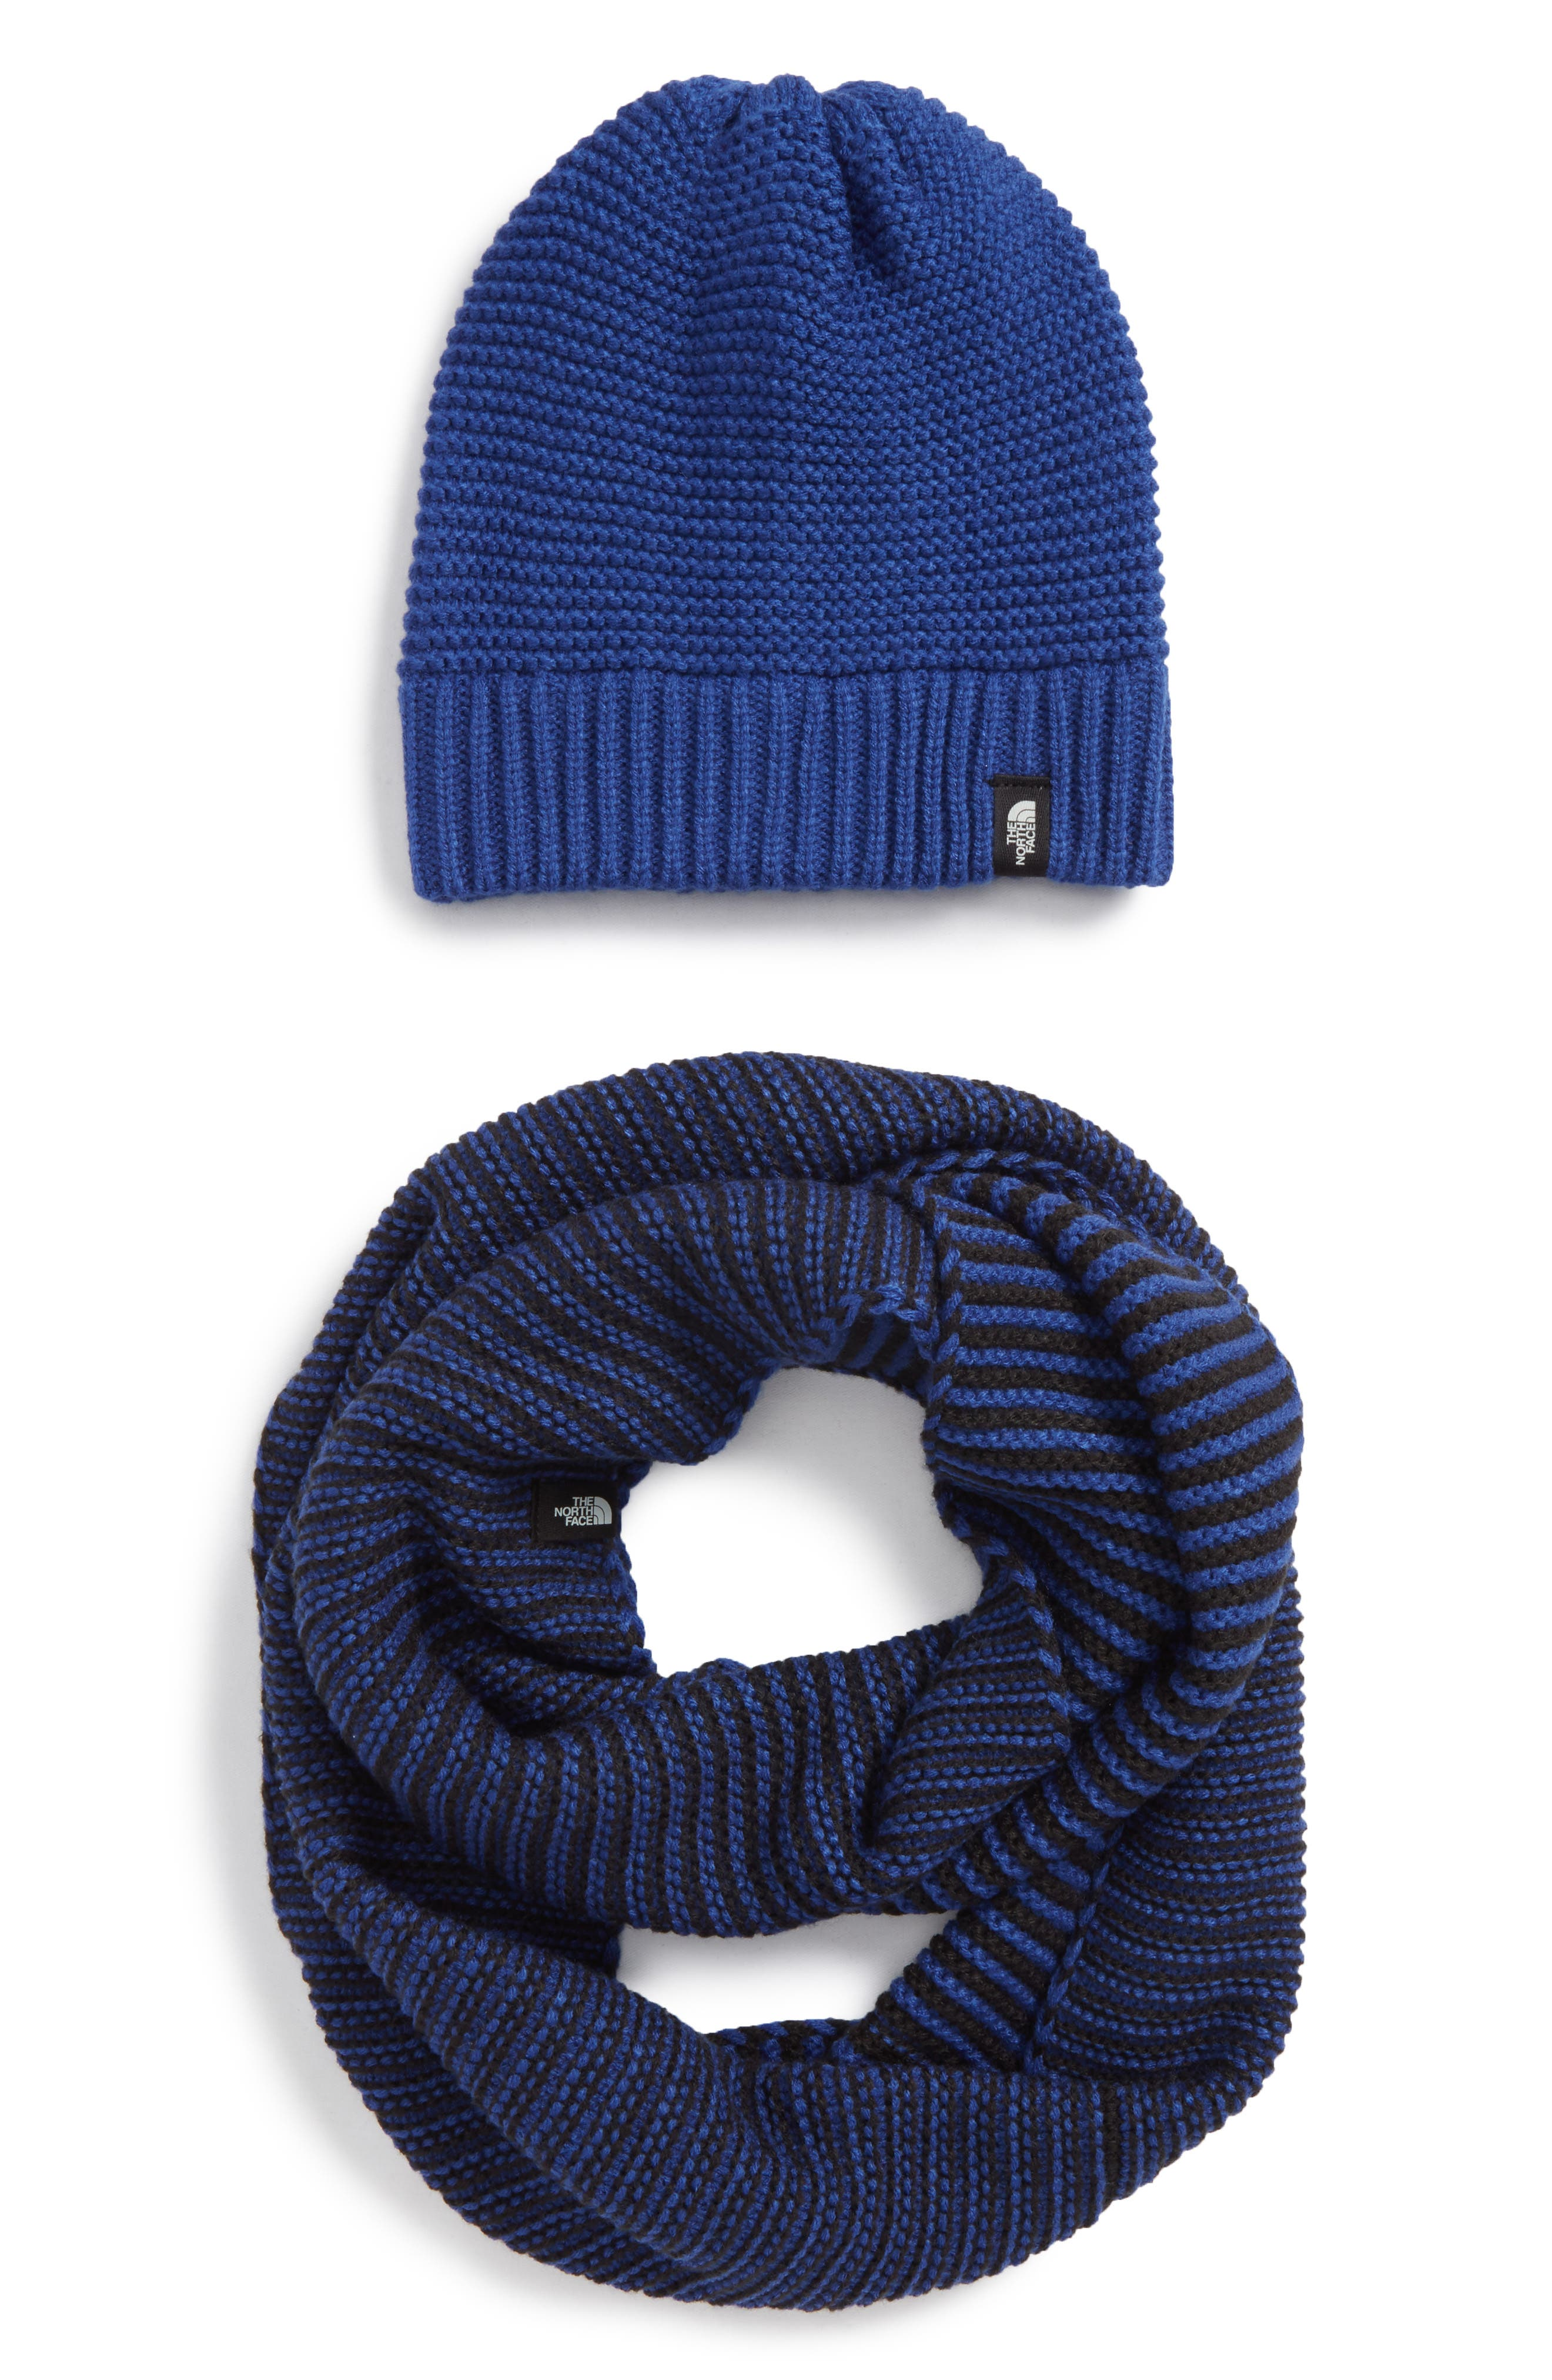 Main Image - The North Face Purrl Stitch Beanie & Infinity Scarf Set